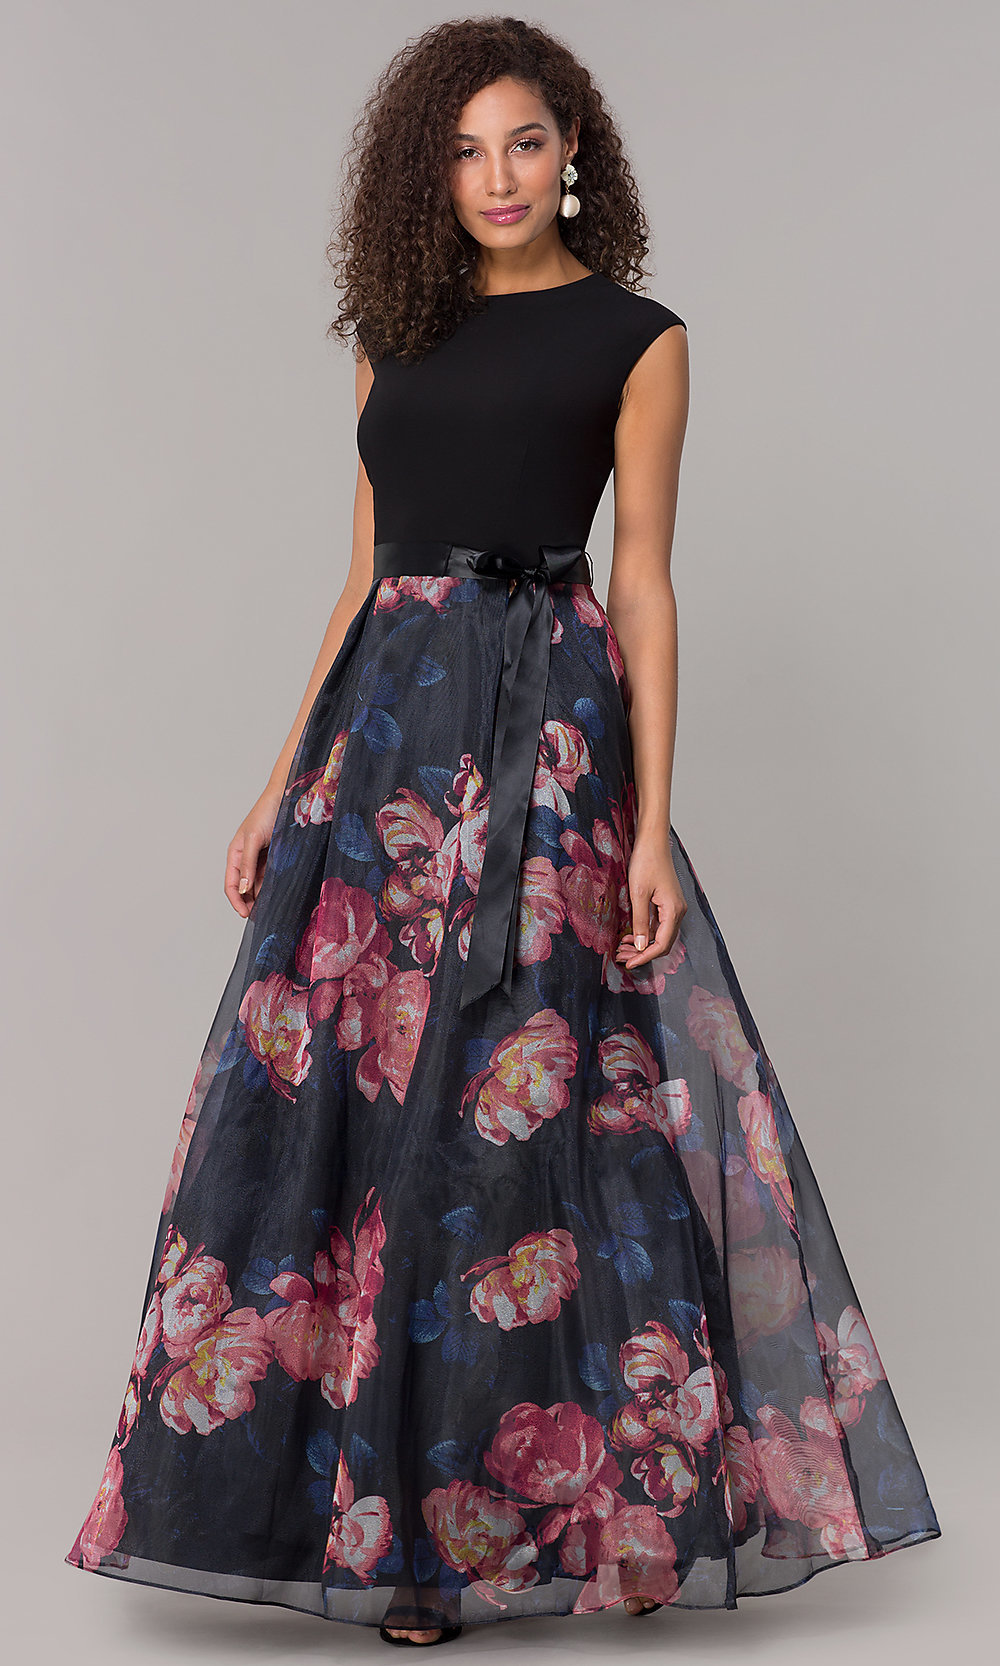 Long Formal Wedding Guest Dress With Floral Print